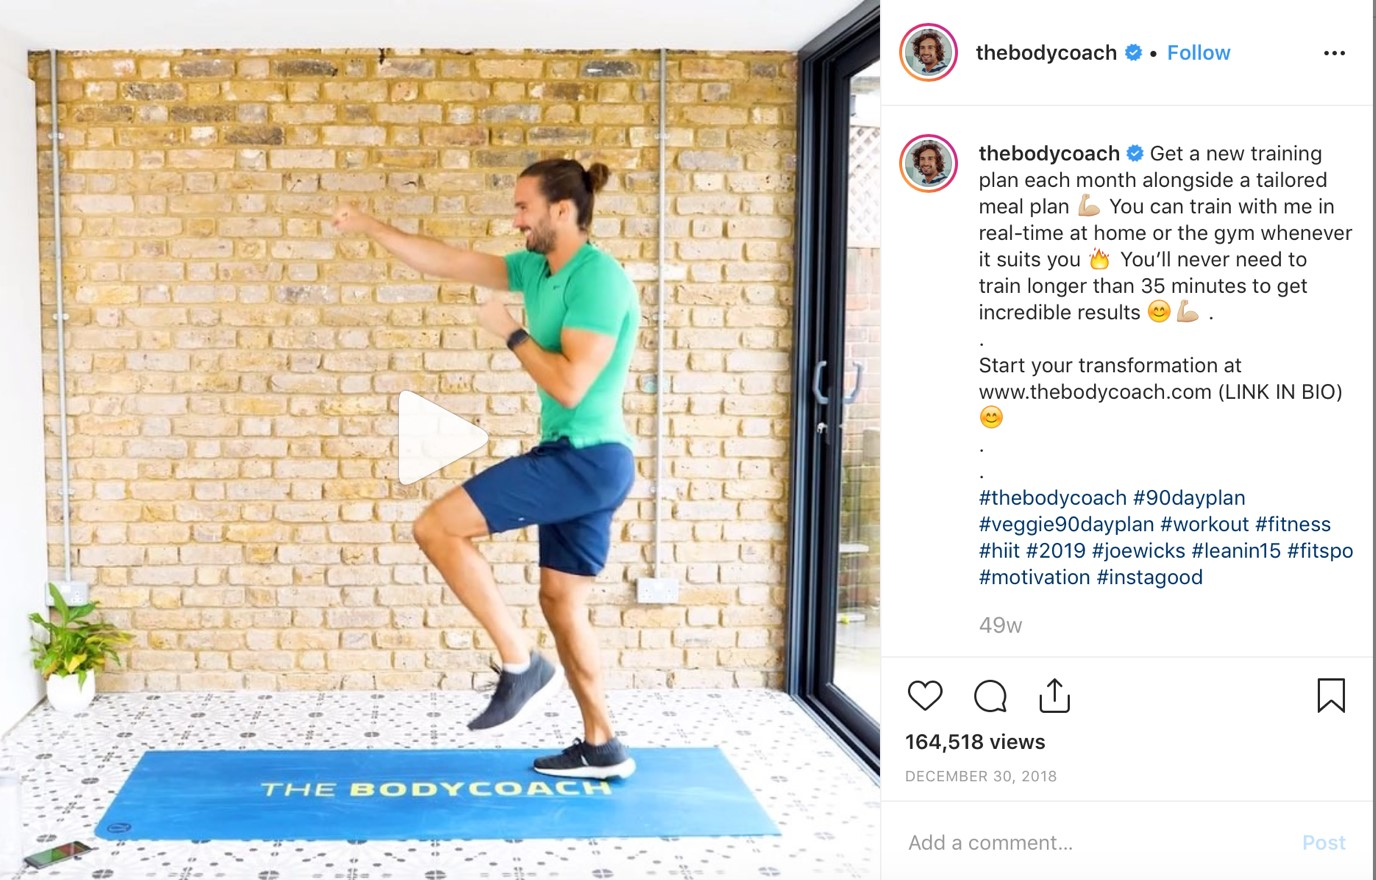 Joe Wicks Instagram post